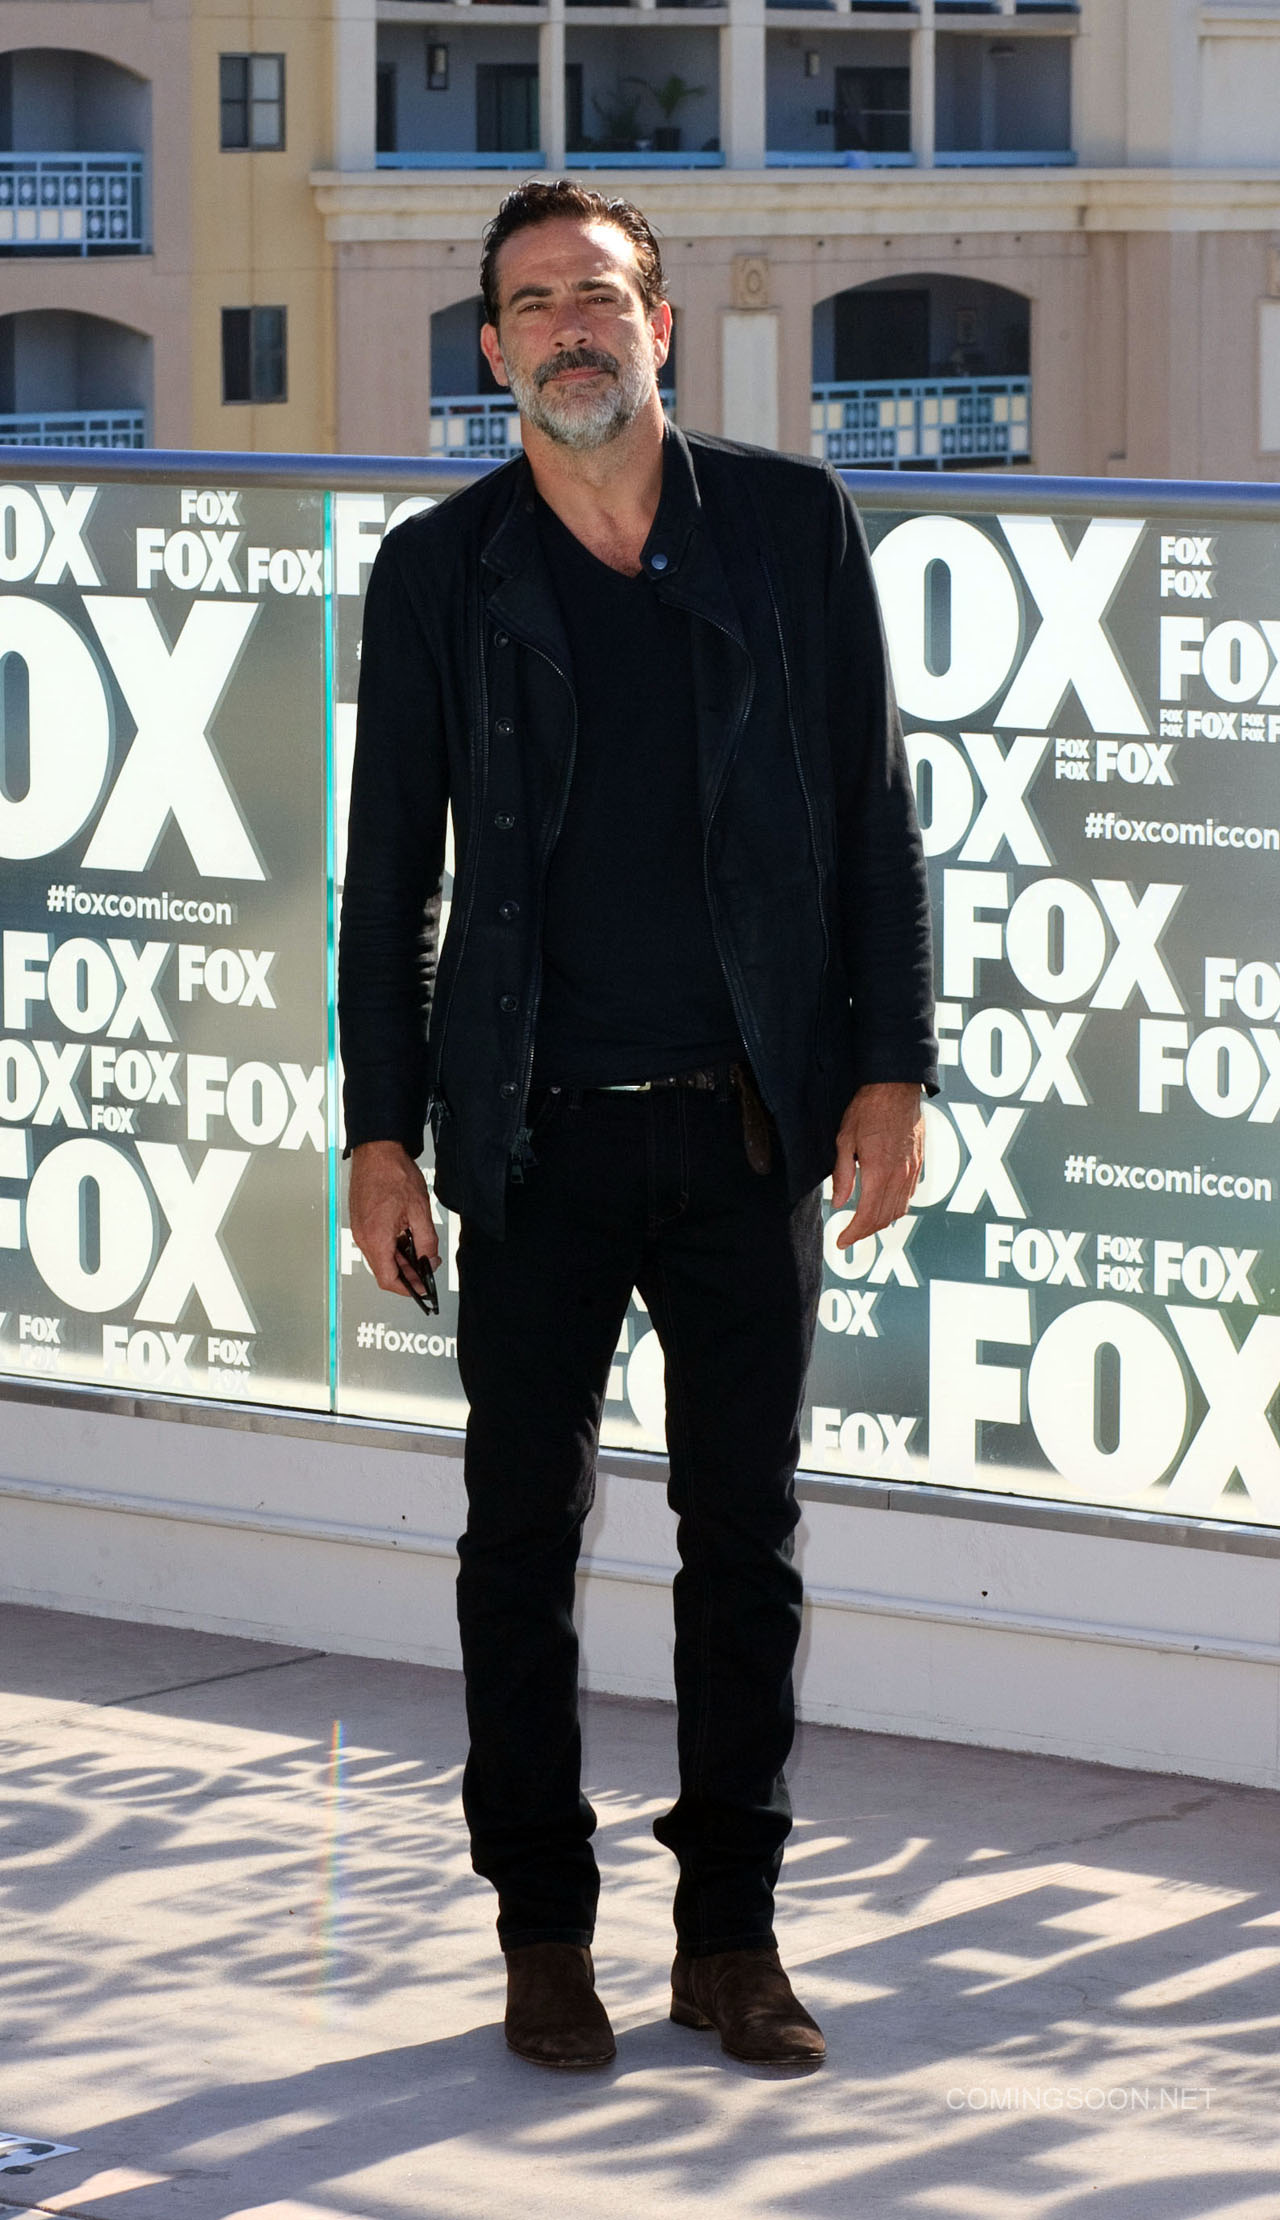 Fox Comic Con breakfast with the cast of Walking Dead and Outcast Featuring: Jeffery Dean Morgan Where: San Diego, California, United States When: 22 Jul 2016 Credit: Tony Forte/WENN